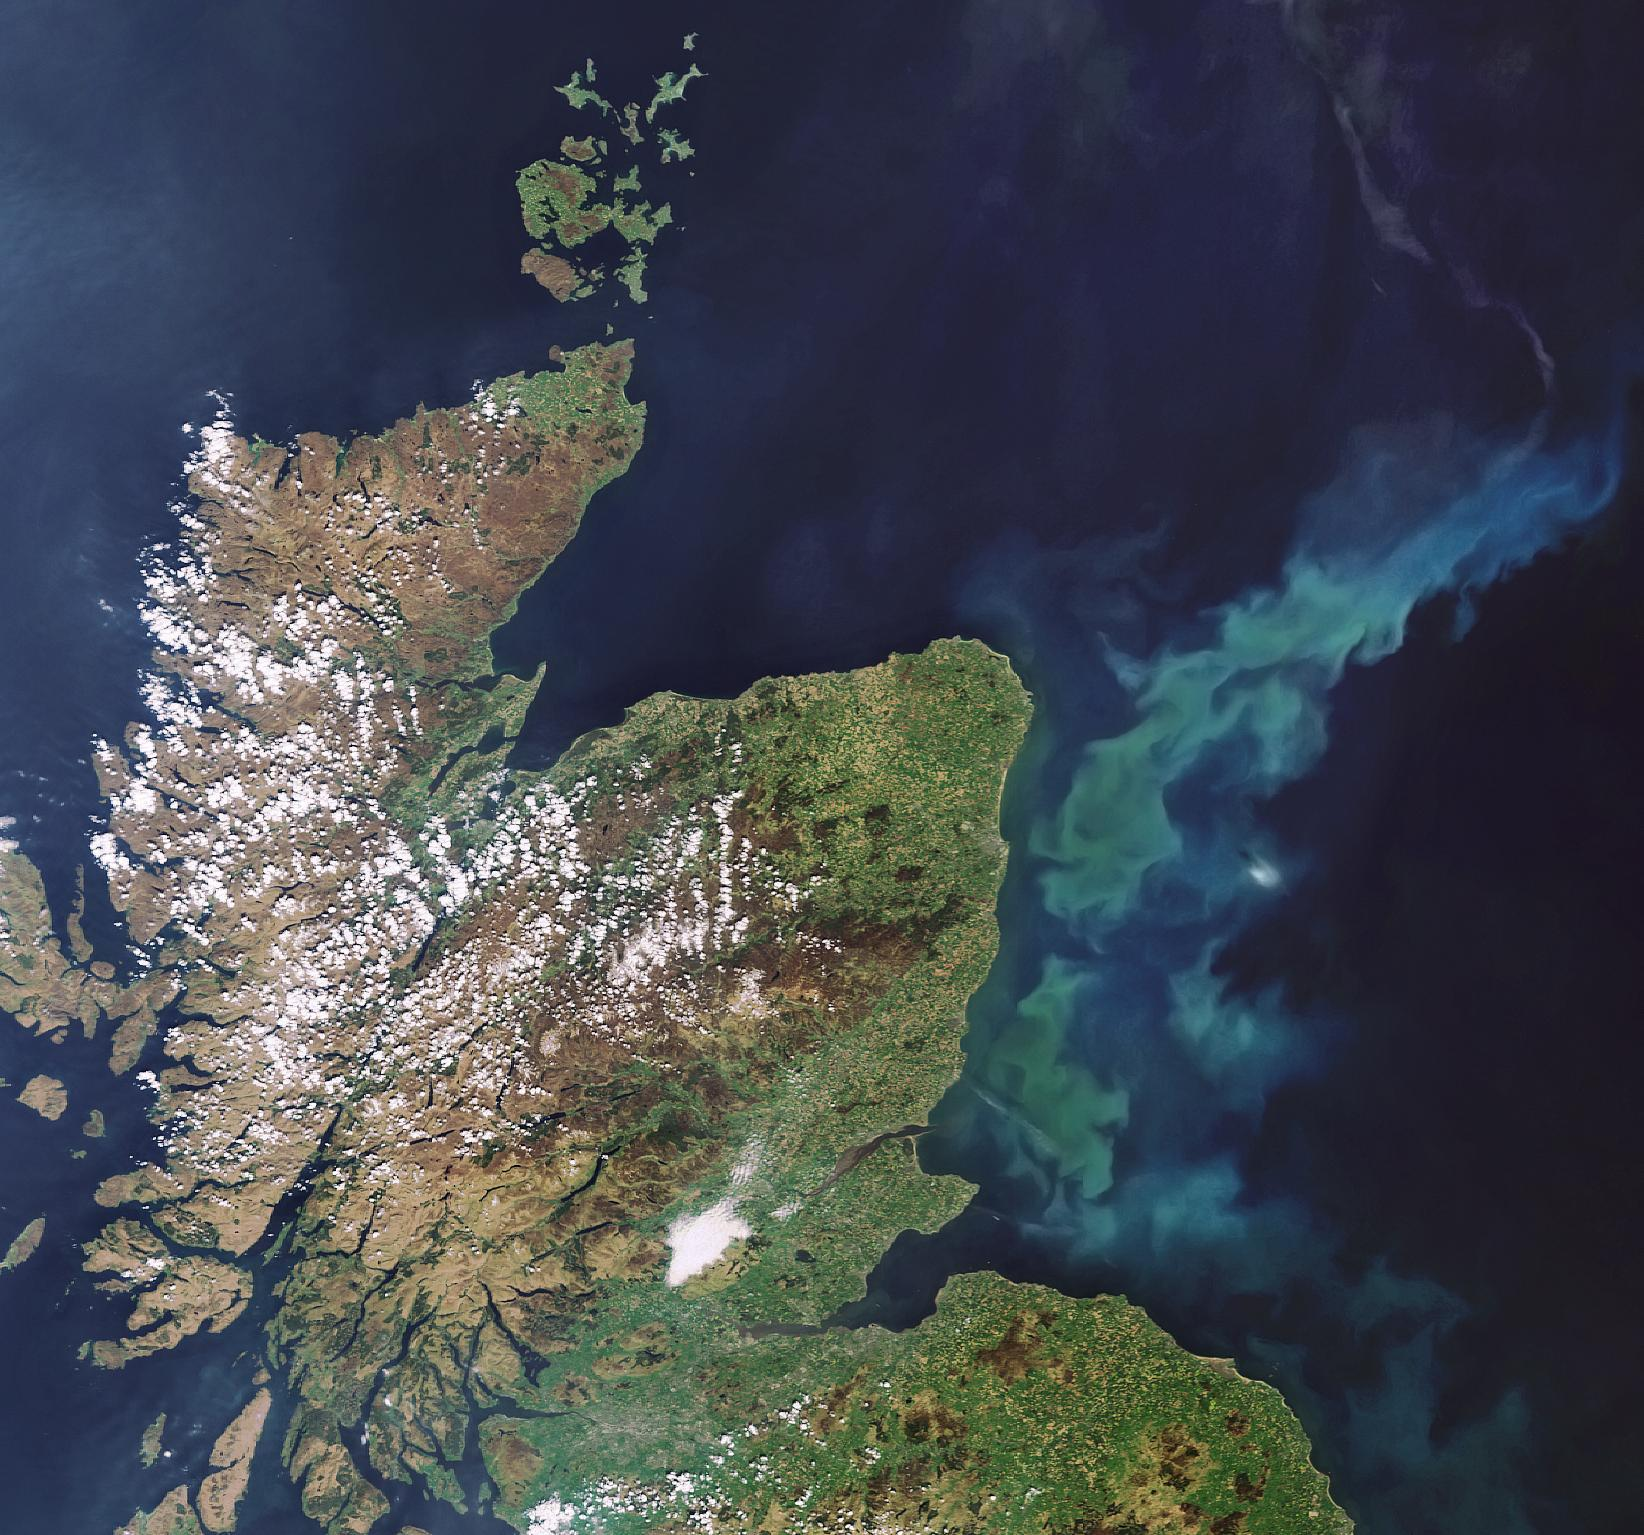 Scotland as seen from a satellite in space